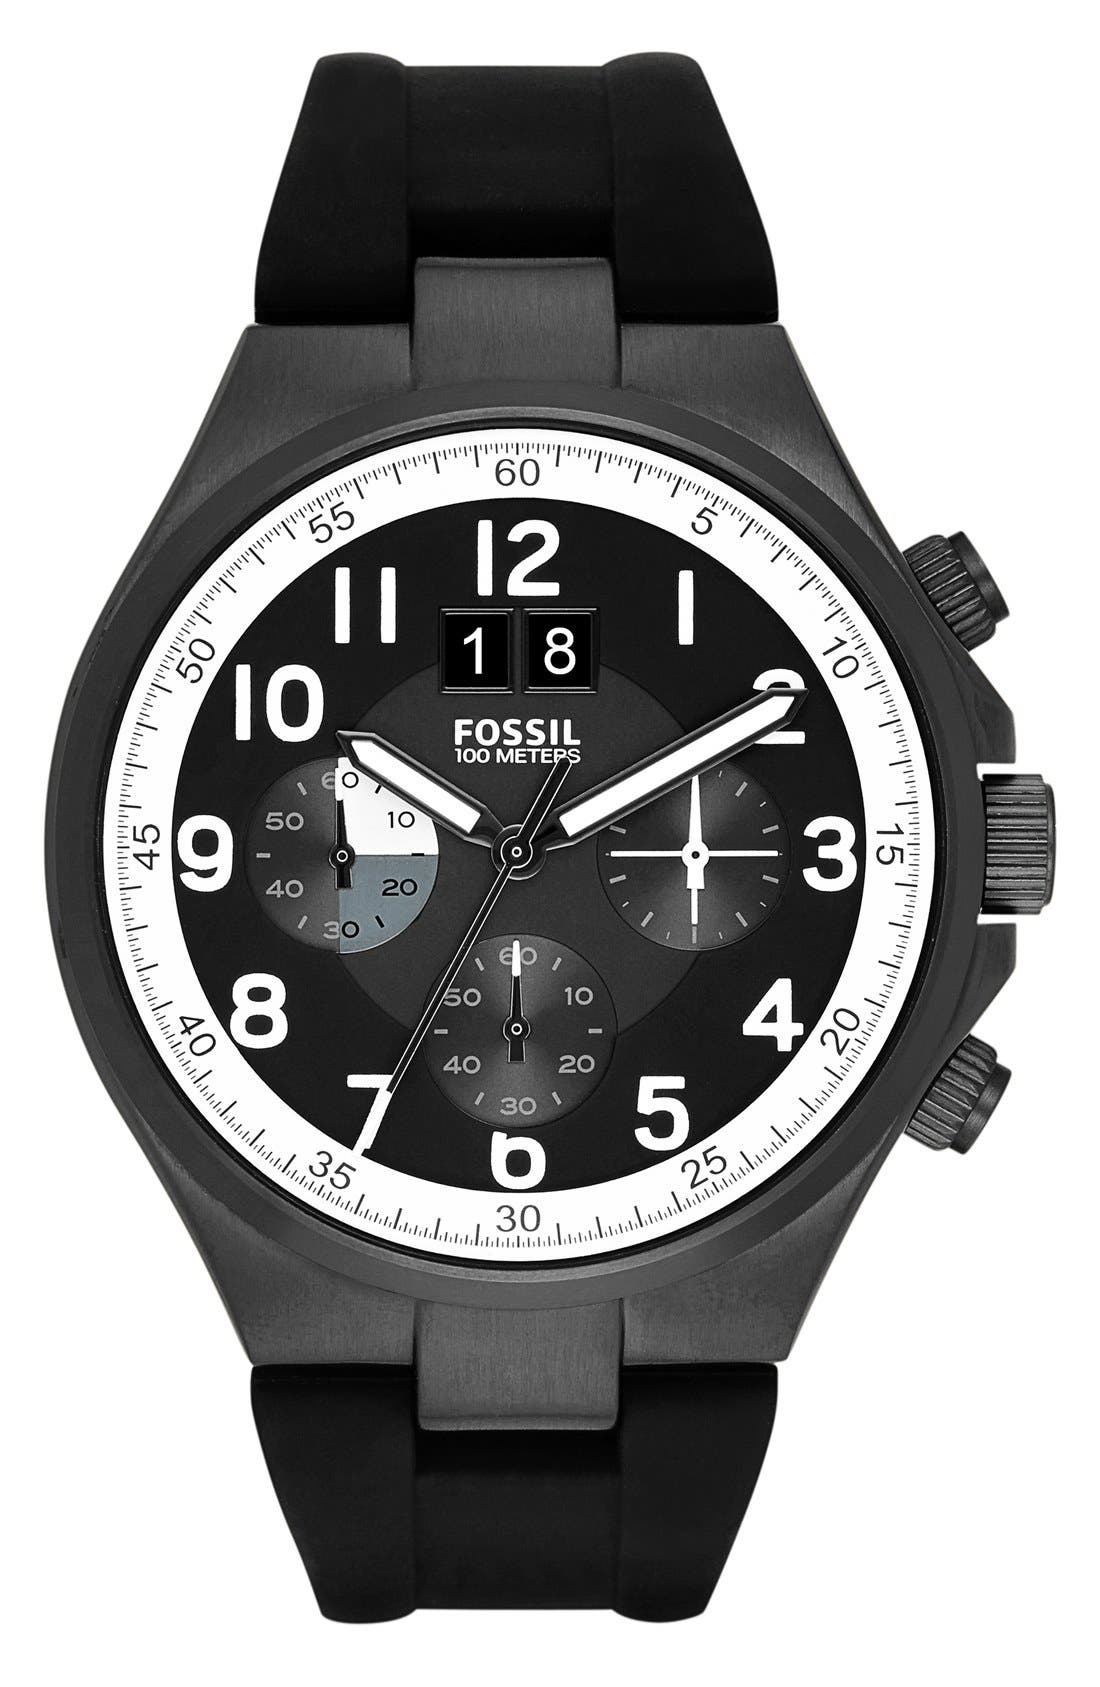 Main Image - Fossil 'Qualifier' Chronograph Silicone Strap Watch, 46mm